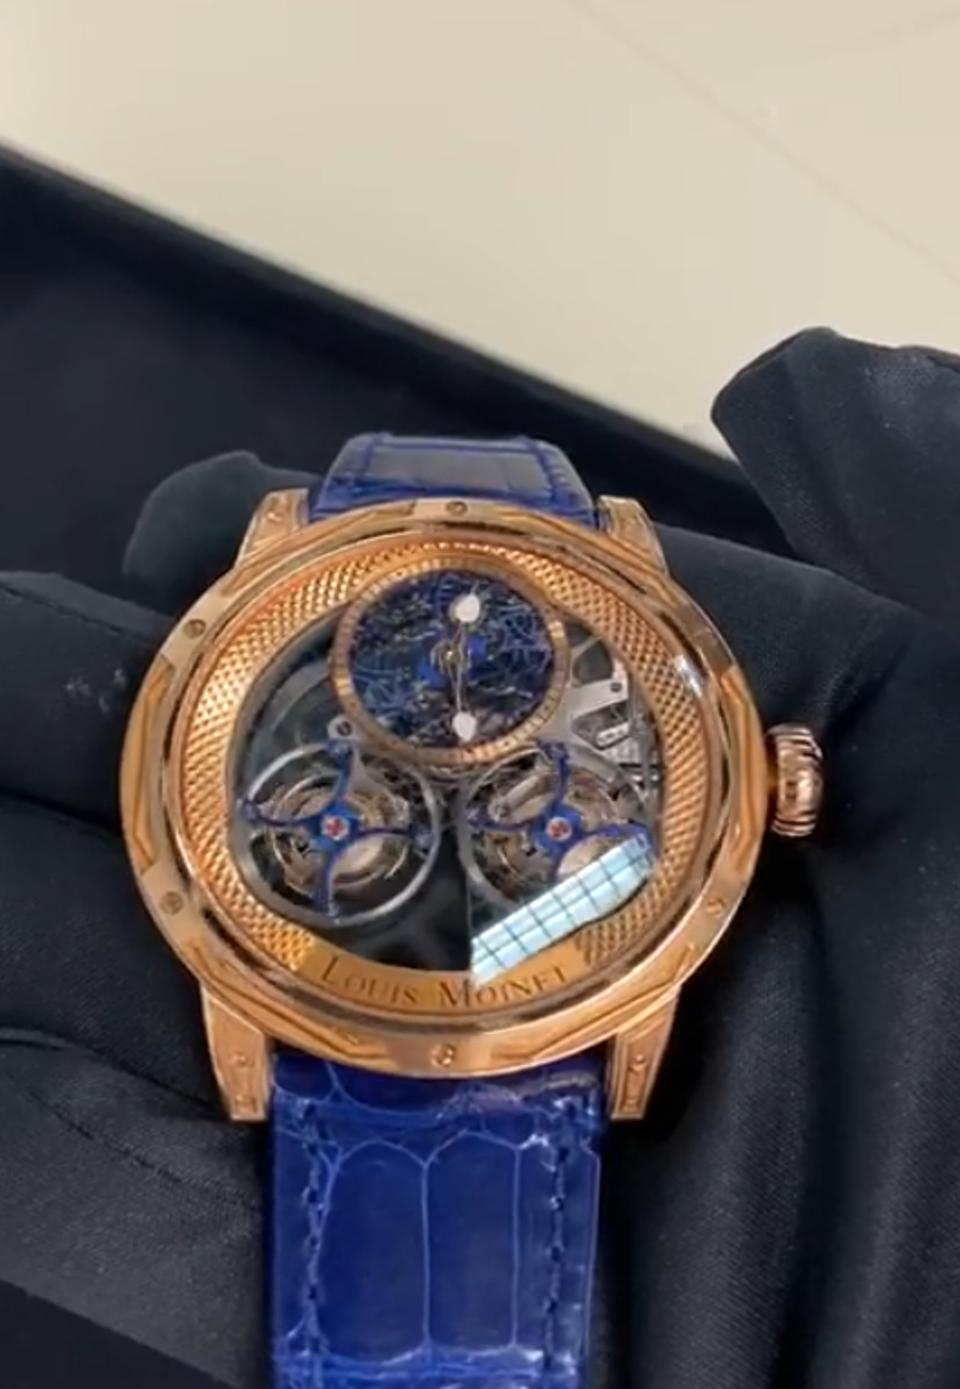 A consumer can watch the quality control of his watch live and digitally